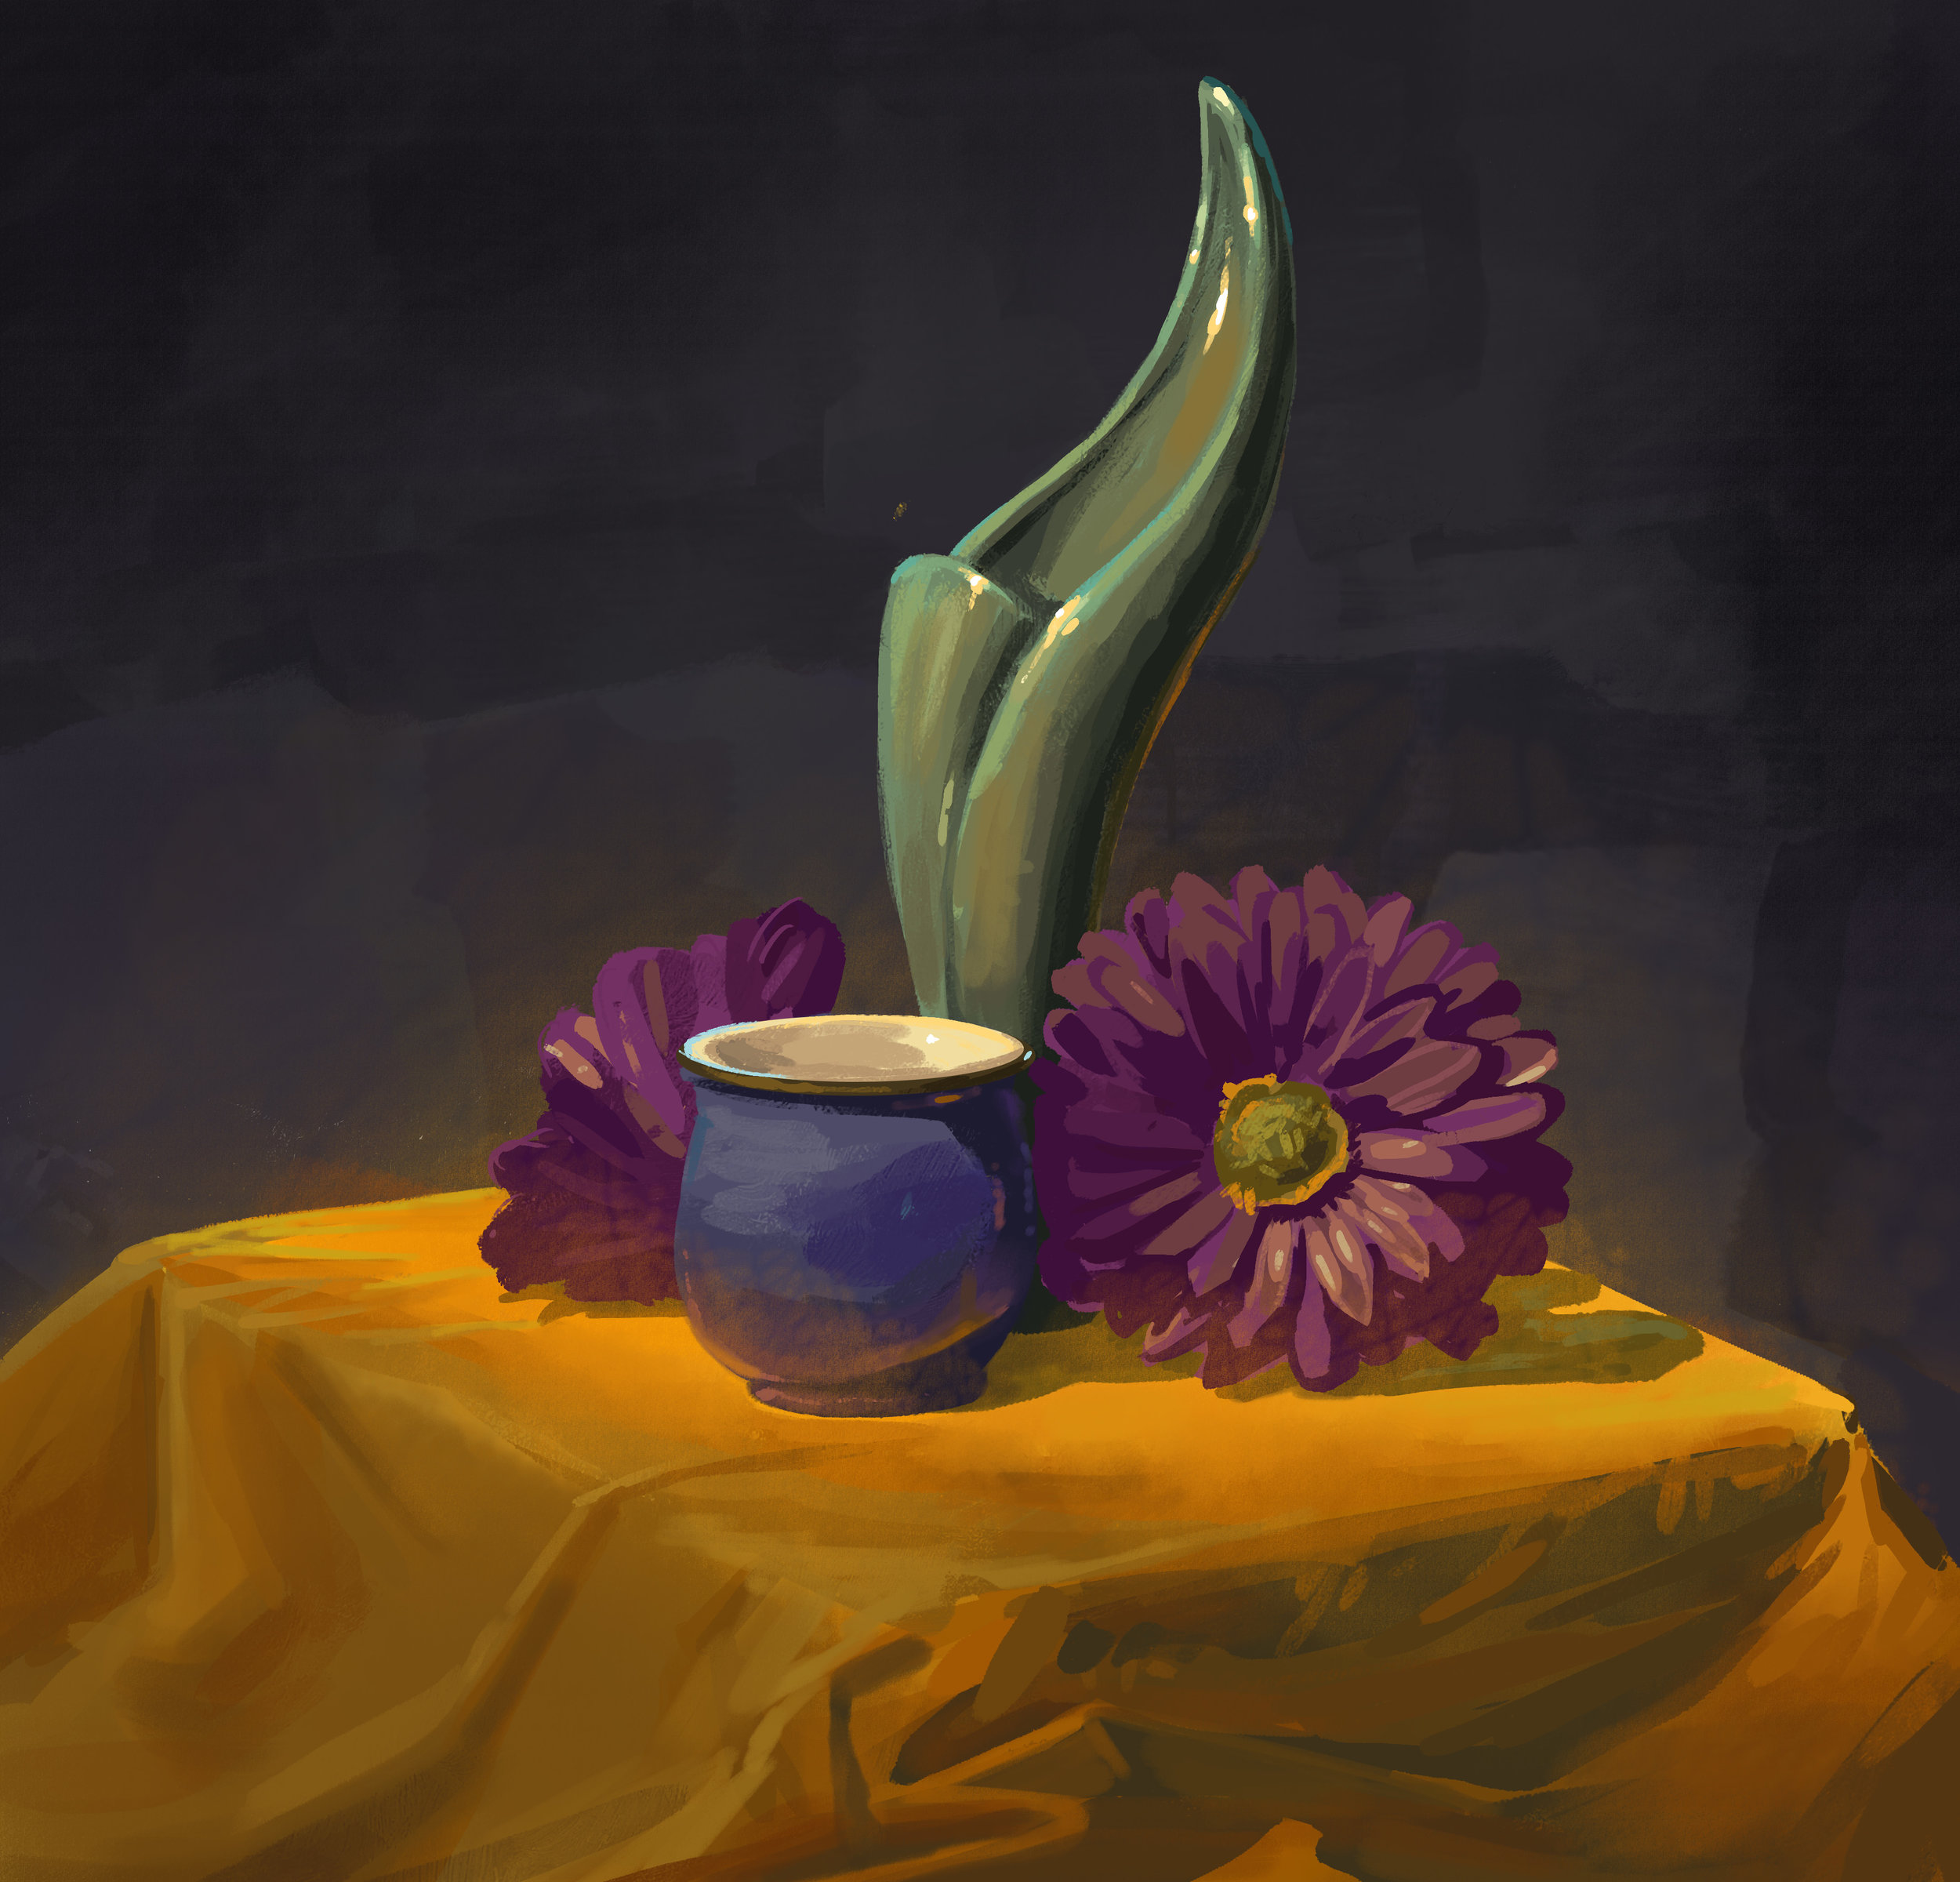 Cavematty_MattyRodgers_StillLife_YellowPurple